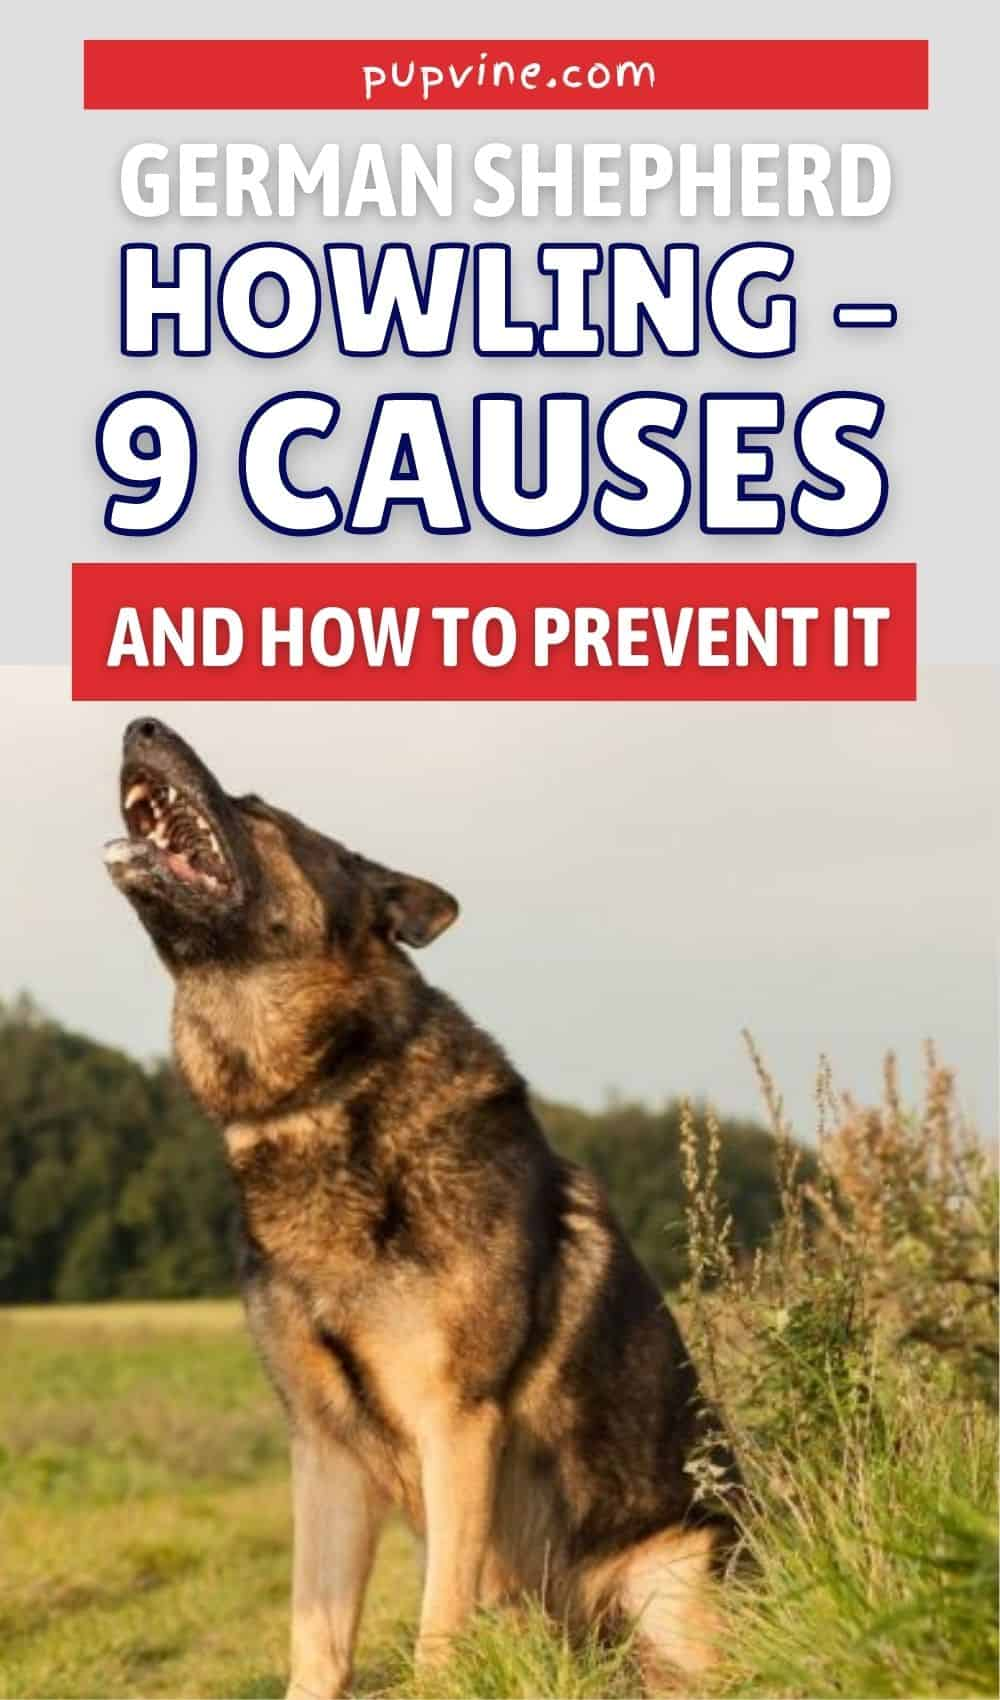 German Shepherd Howling – 9 Causes And How To Prevent It